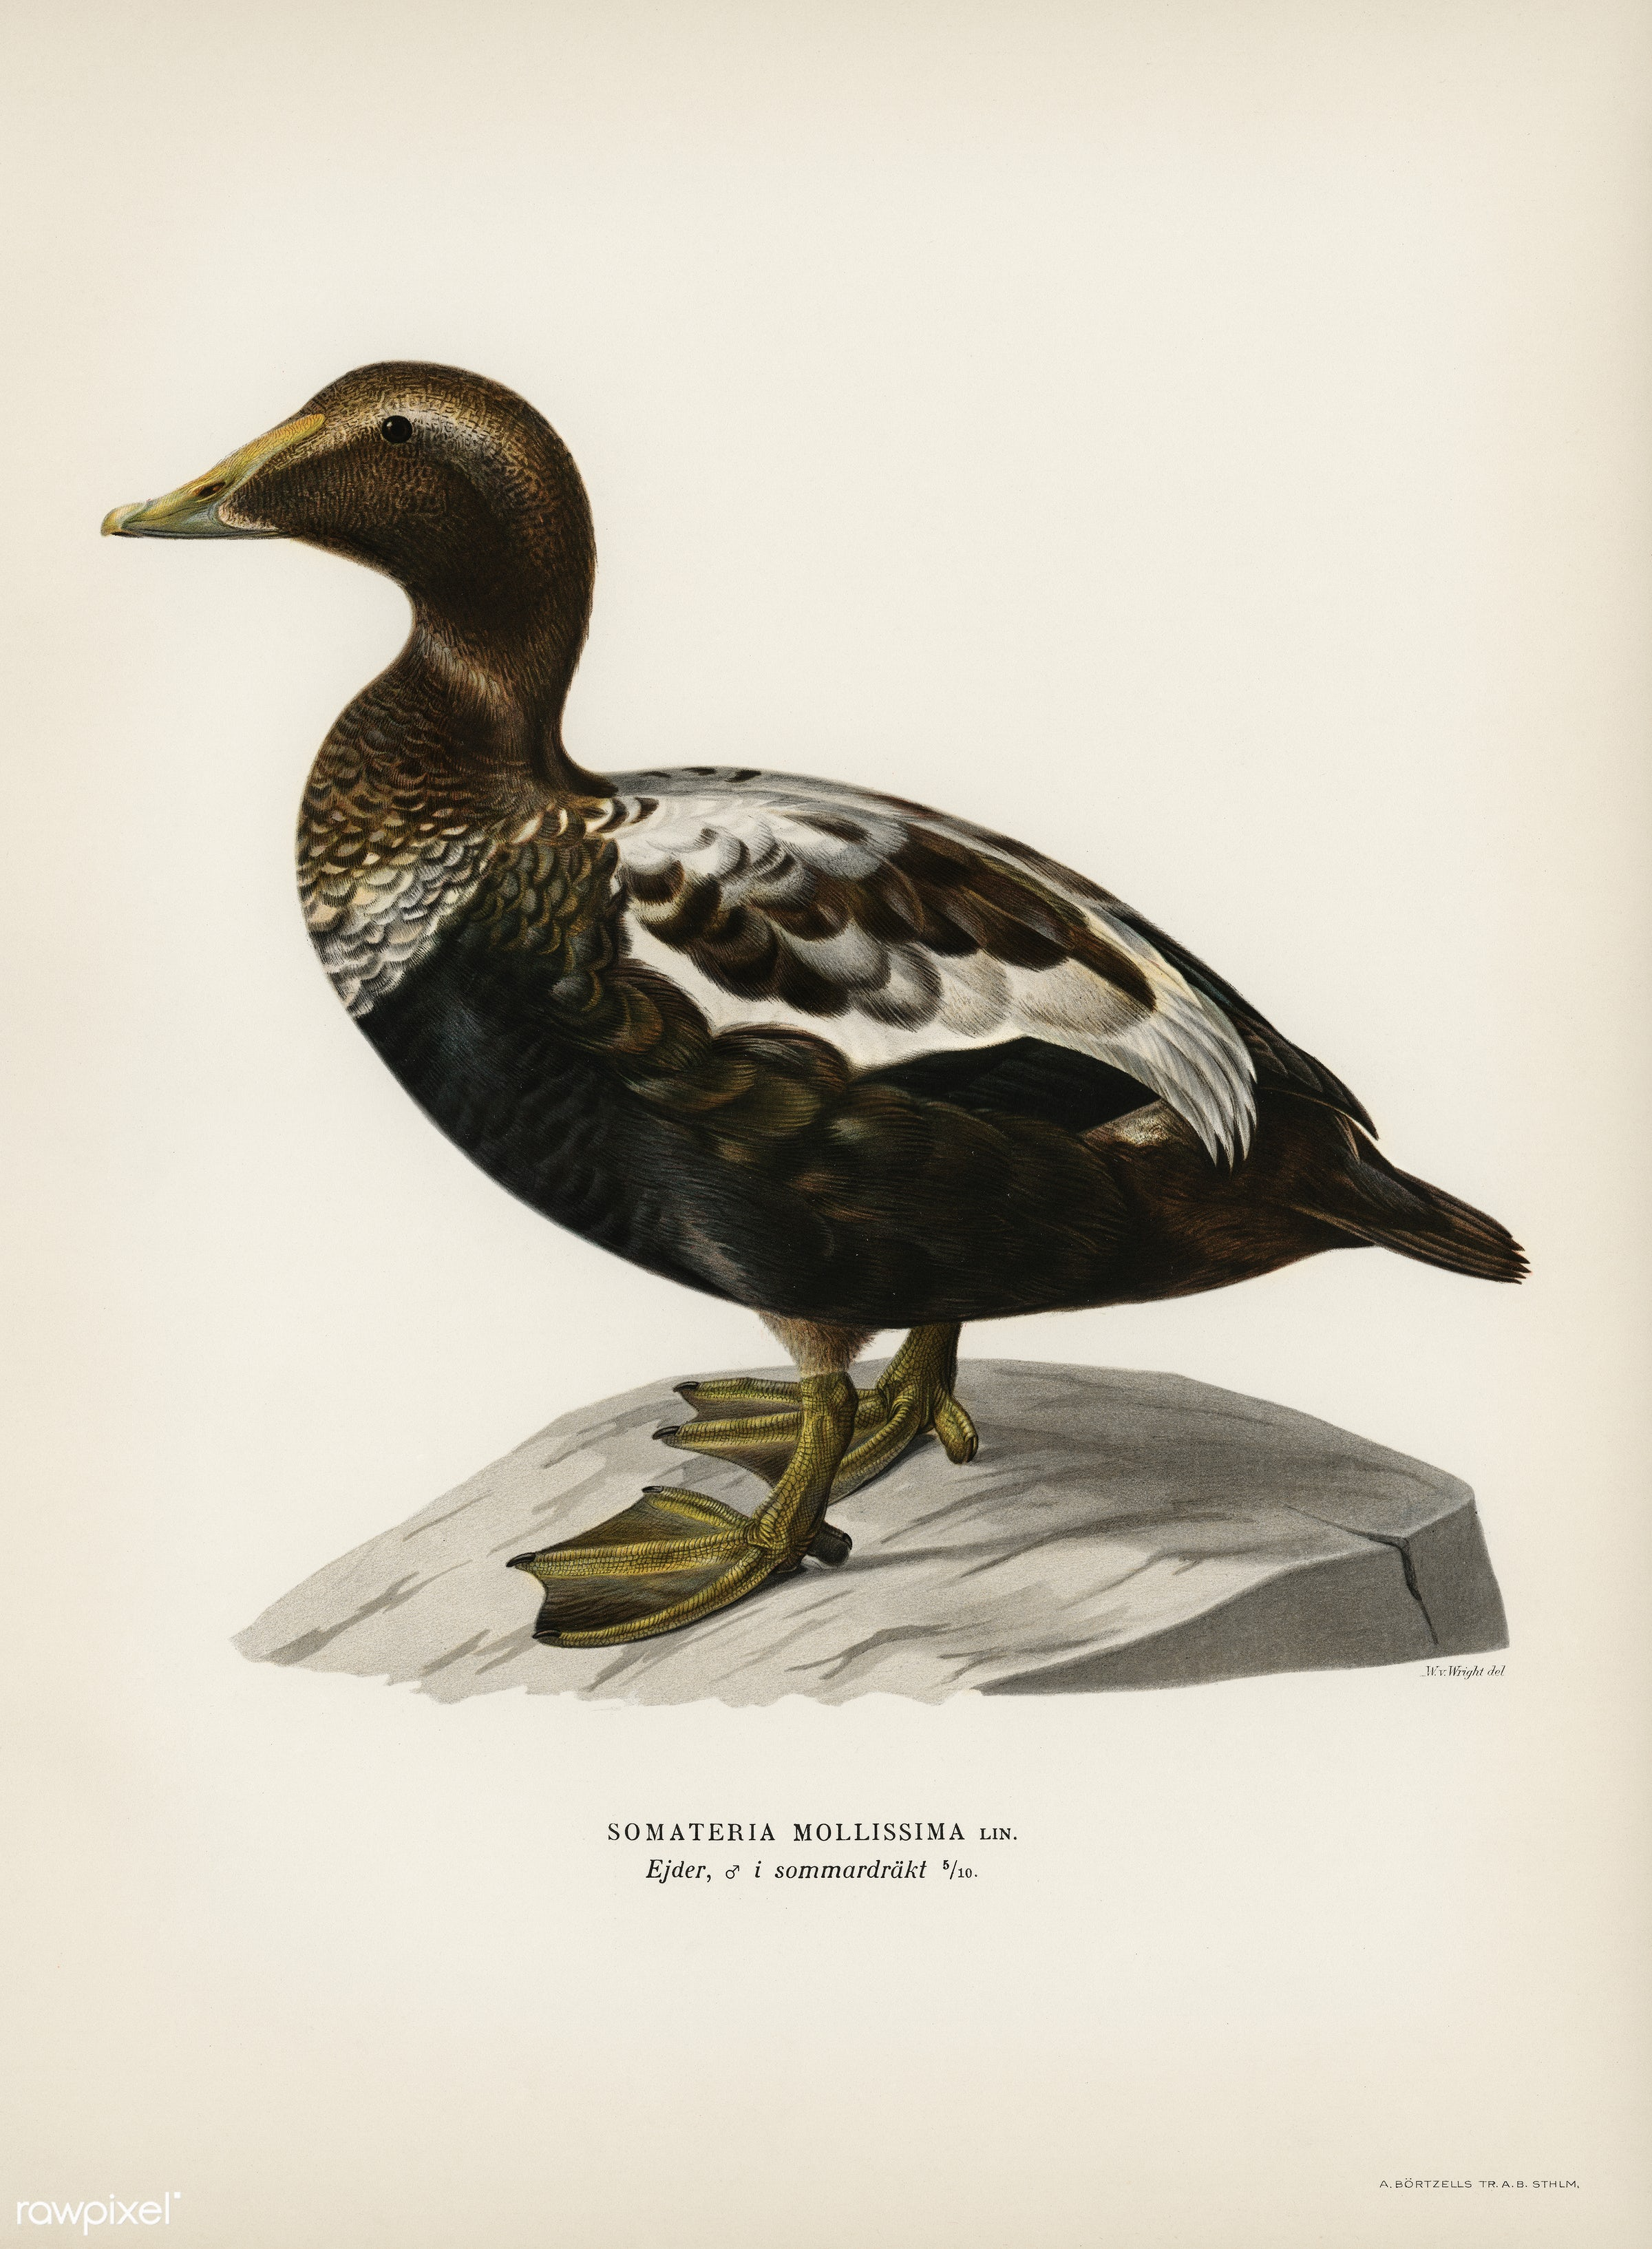 Eider (CORACIAS SOMATERIA MOLLISSIMA) illustrated by the von Wright brothers. Digitally enhanced from our own 1929 folio...